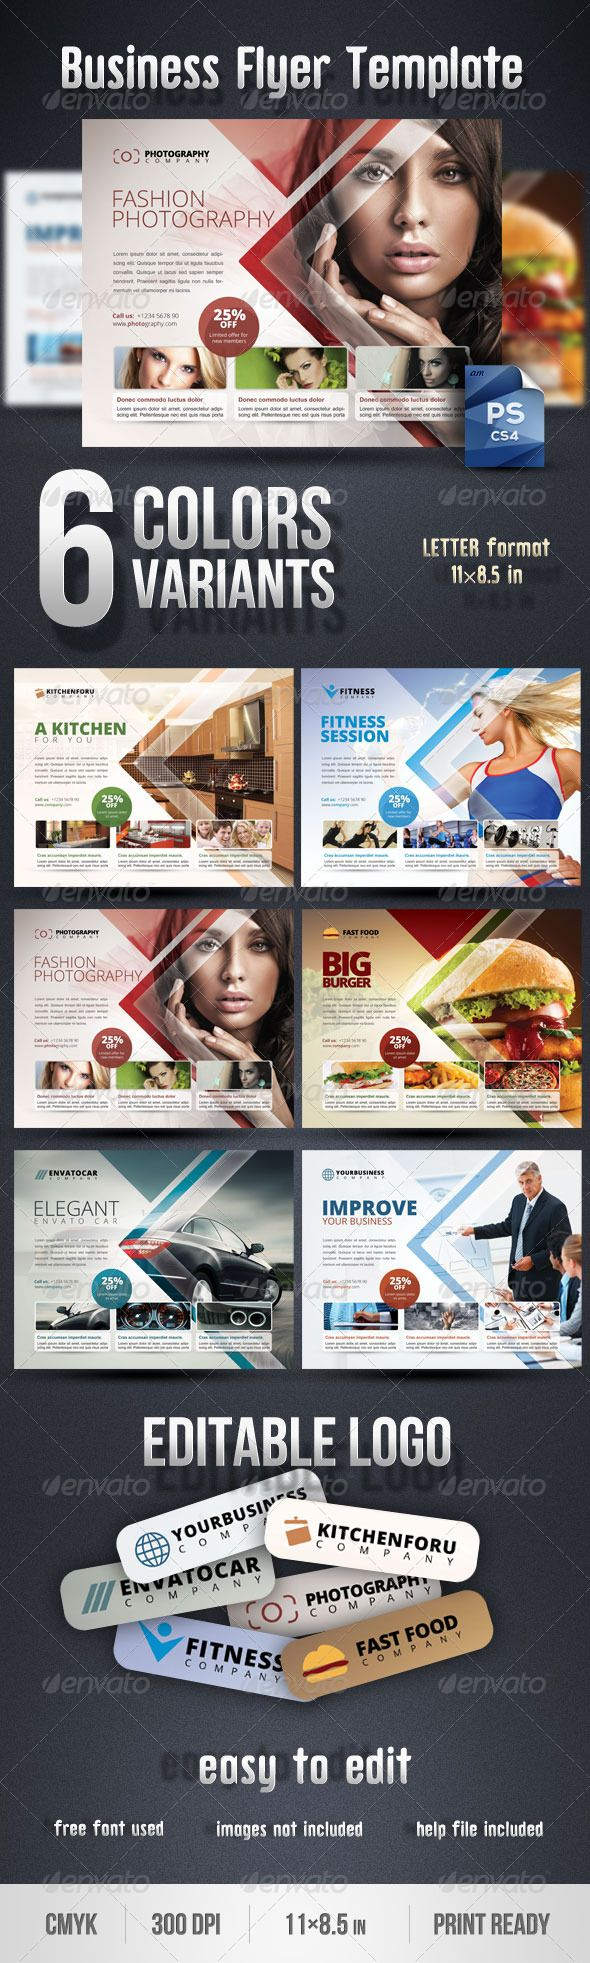 1000 ideas about business flyers business flyer business flyer template